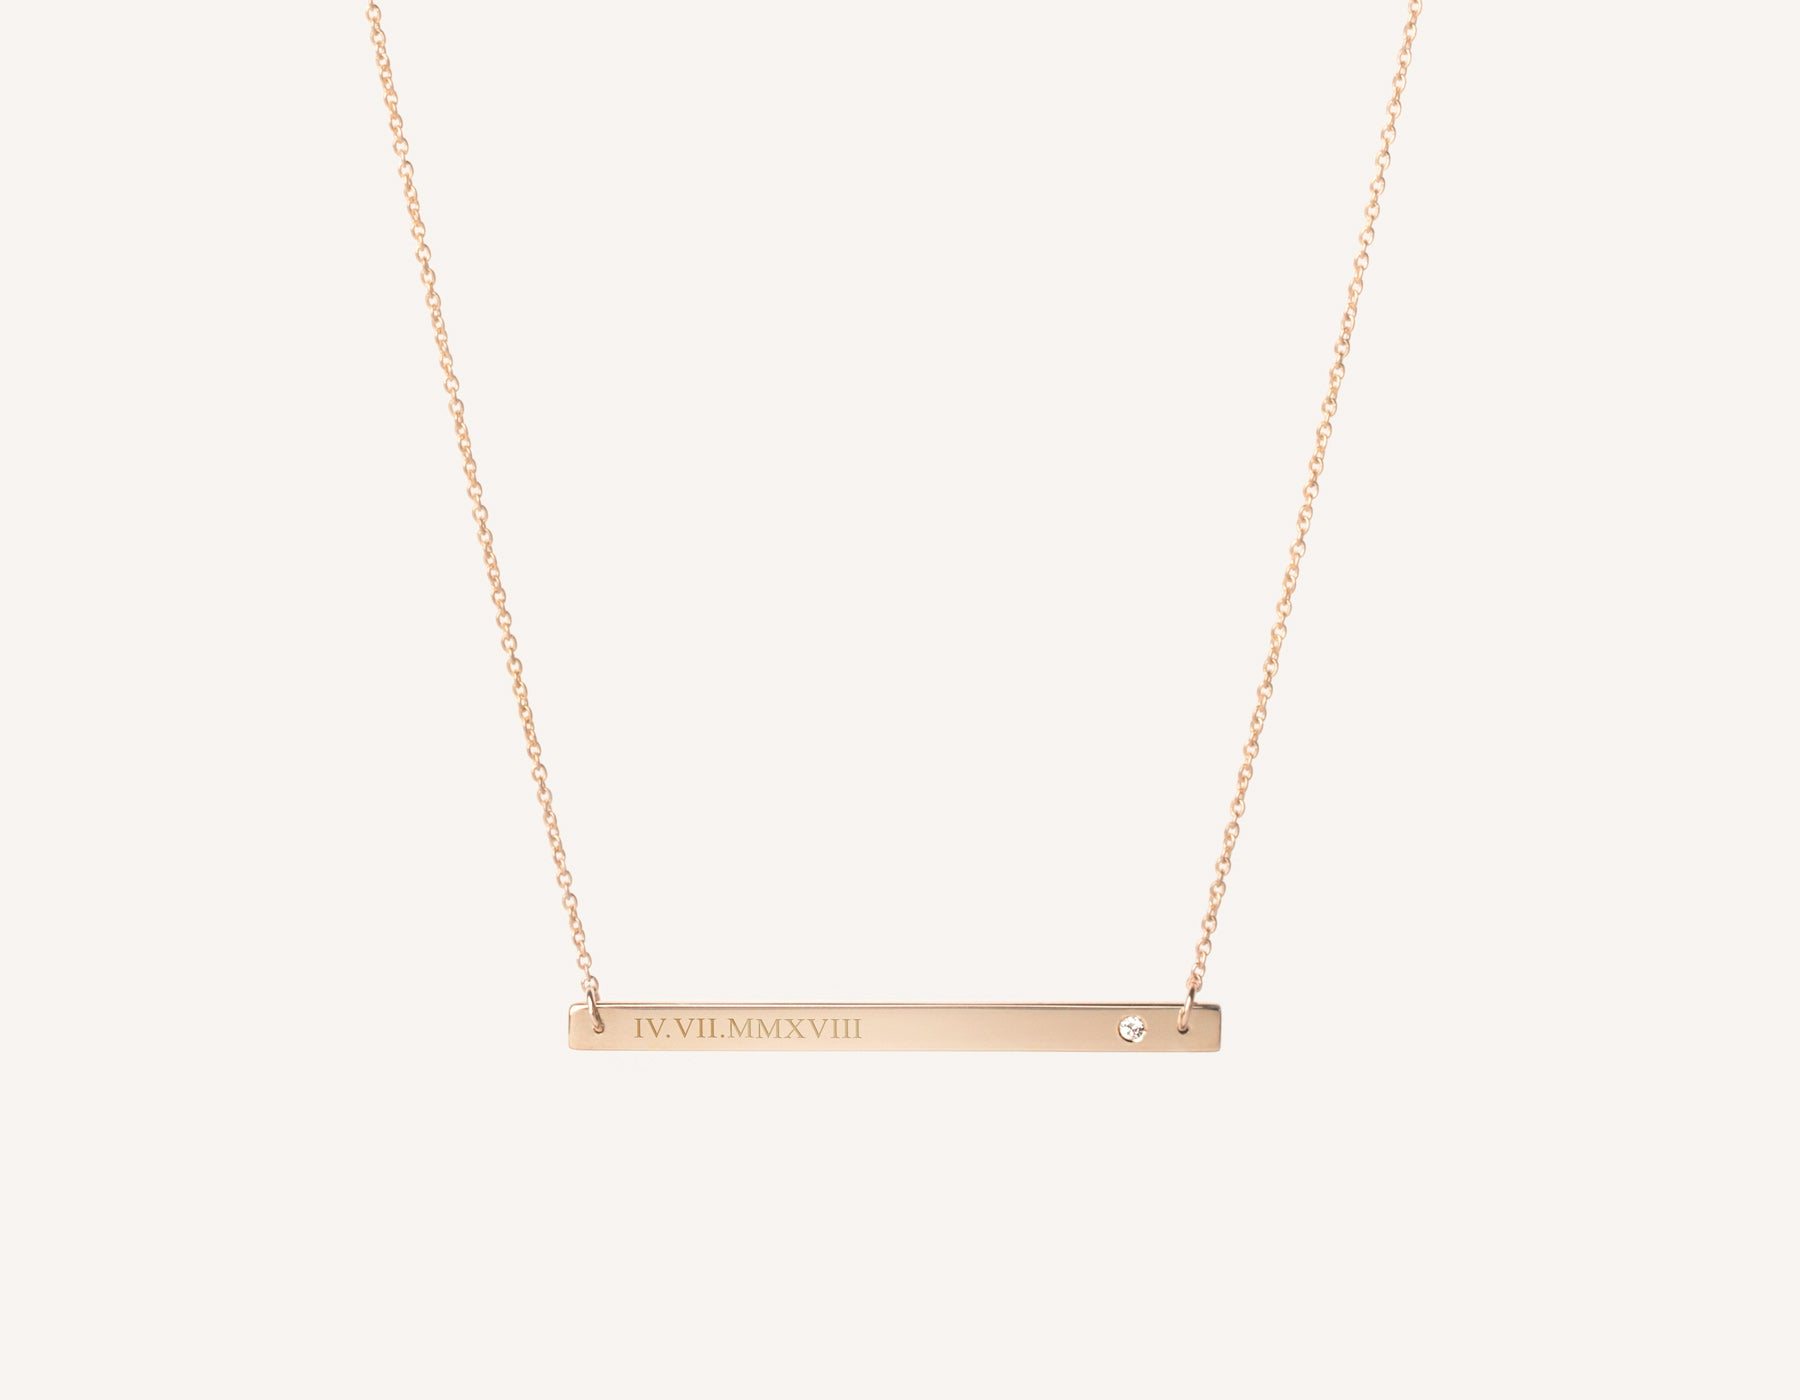 Customized engraving 14k solid gold Bar Necklace with .02 carat diamond on thin simple 17 inch chain by Vrai and Oro, 14K Rose Gold